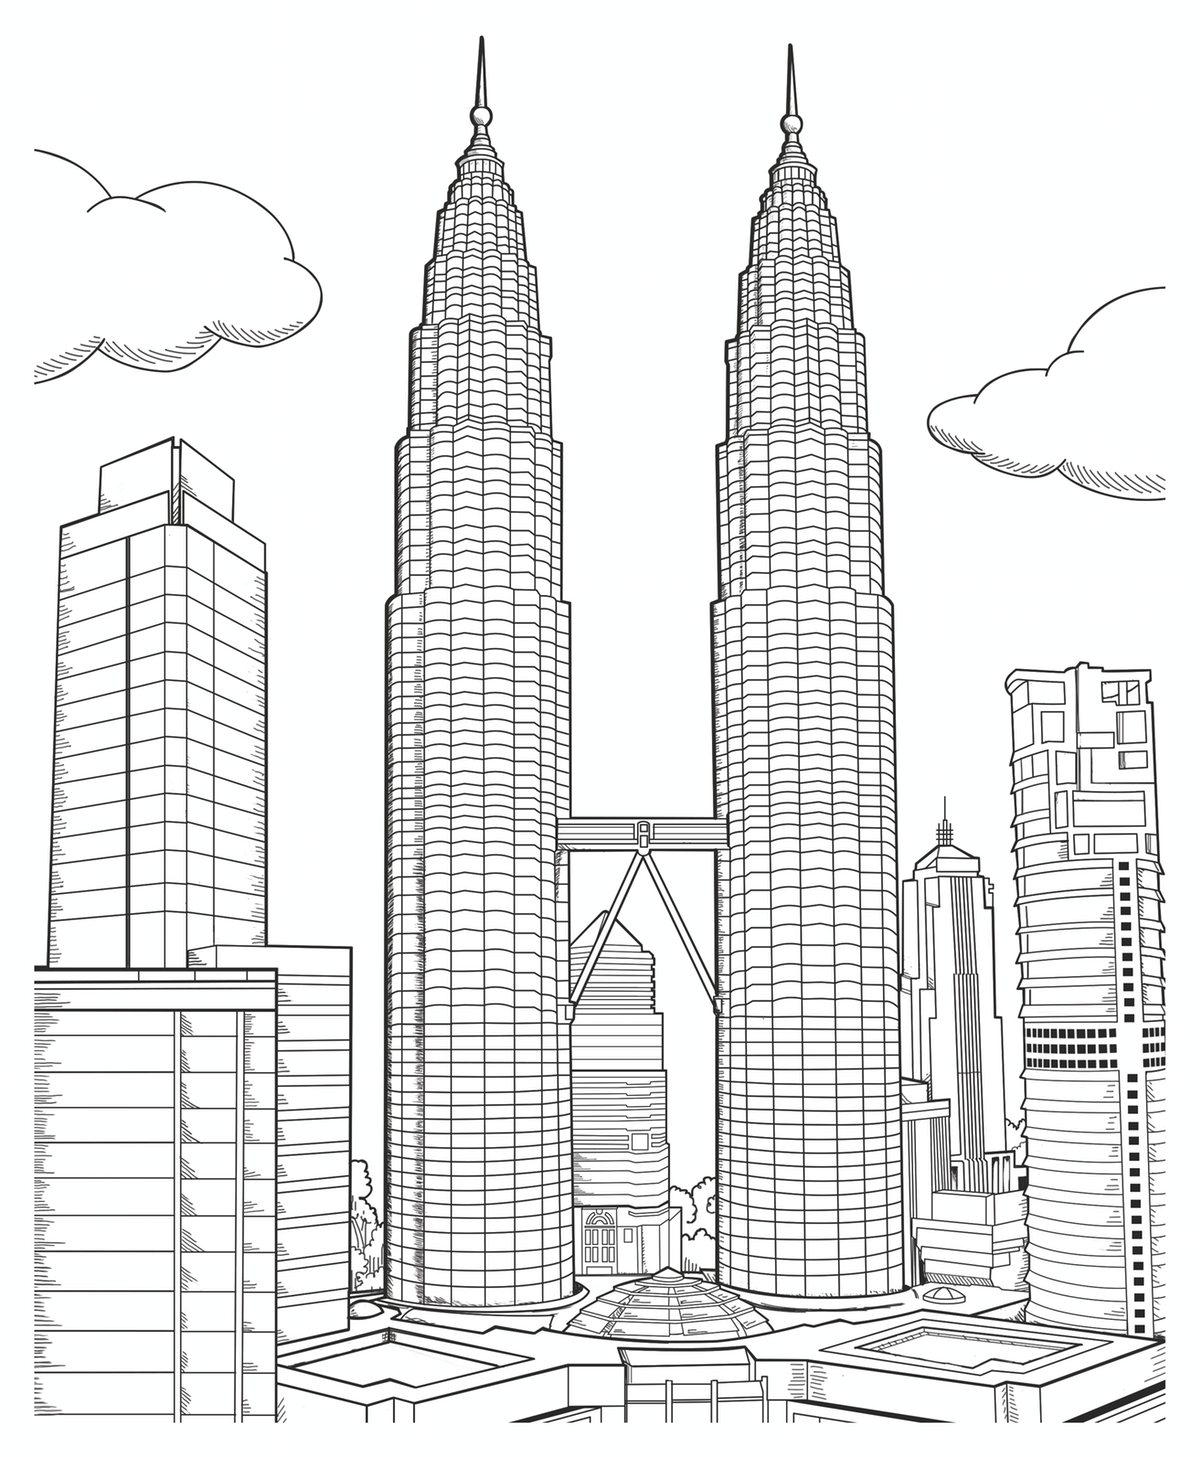 Exciting Opportunity-Create 8 sketches And designs for an adult coloring book